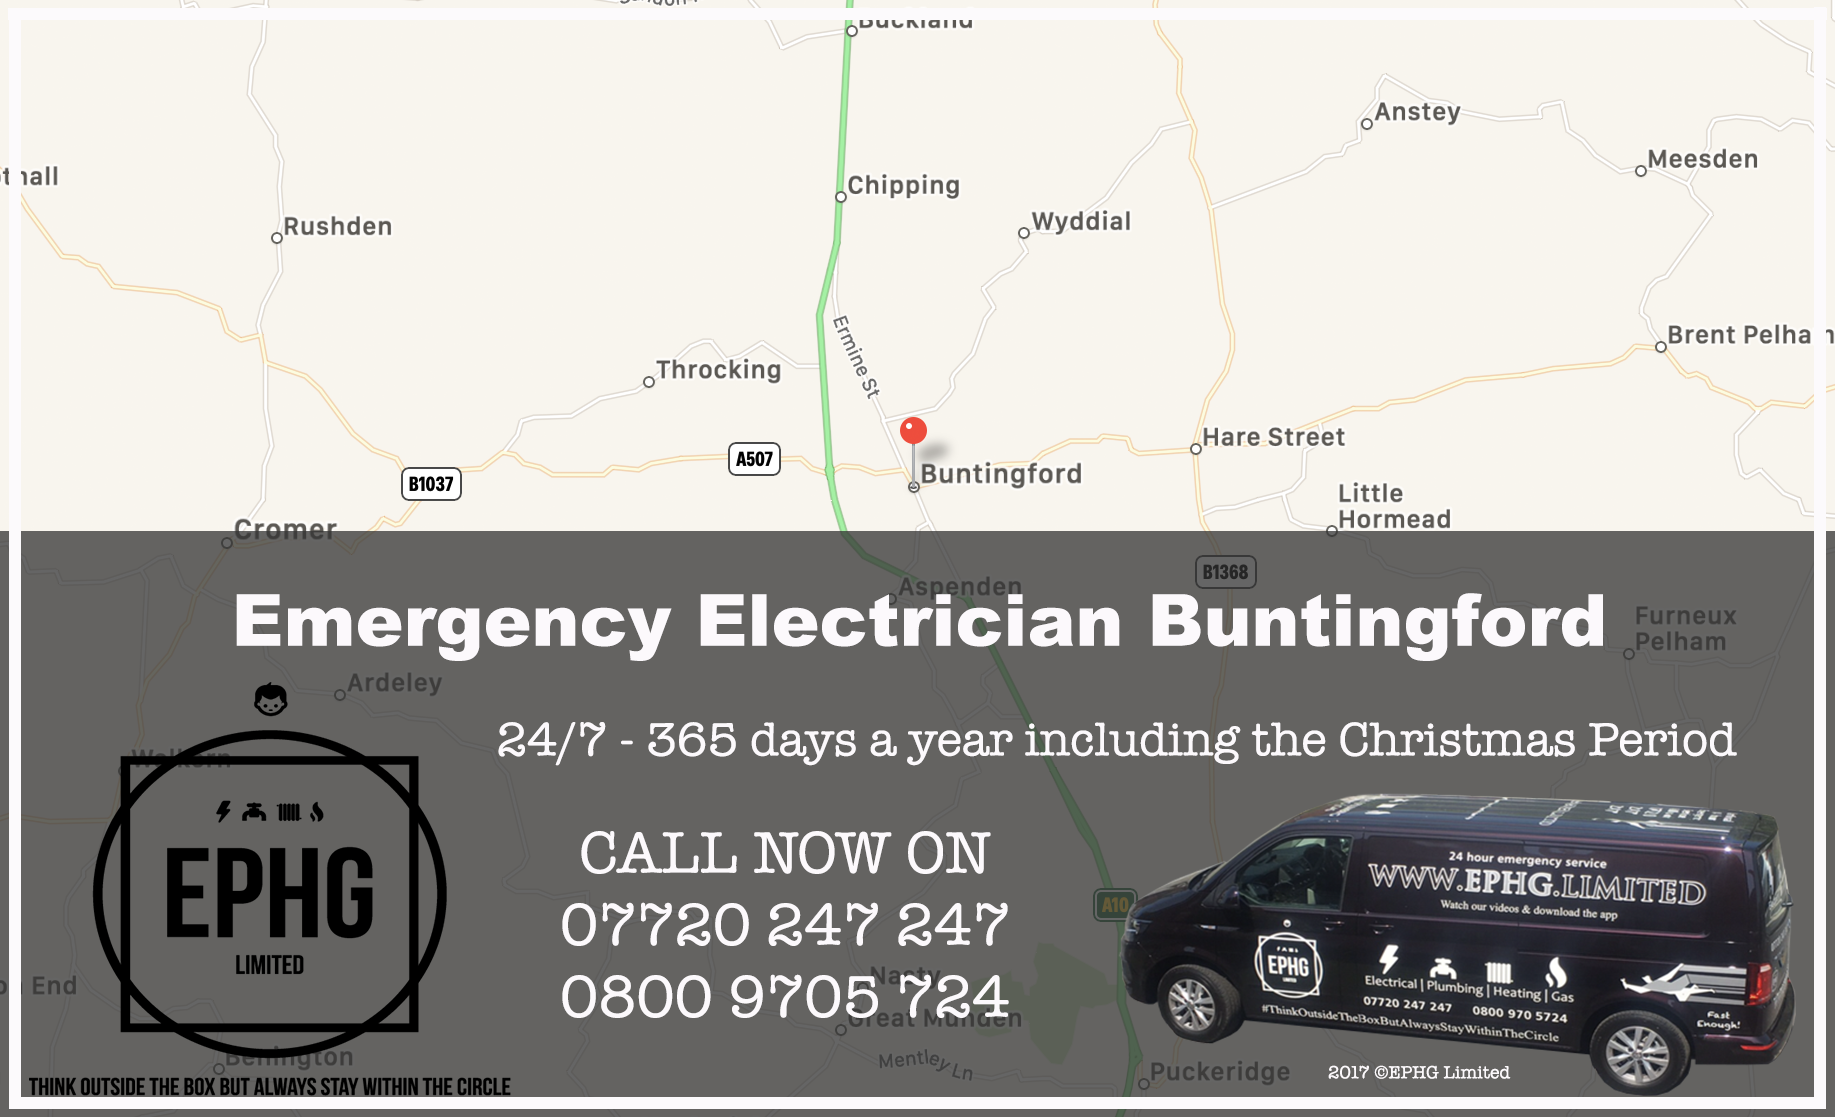 Emergency Electrician Buntingford